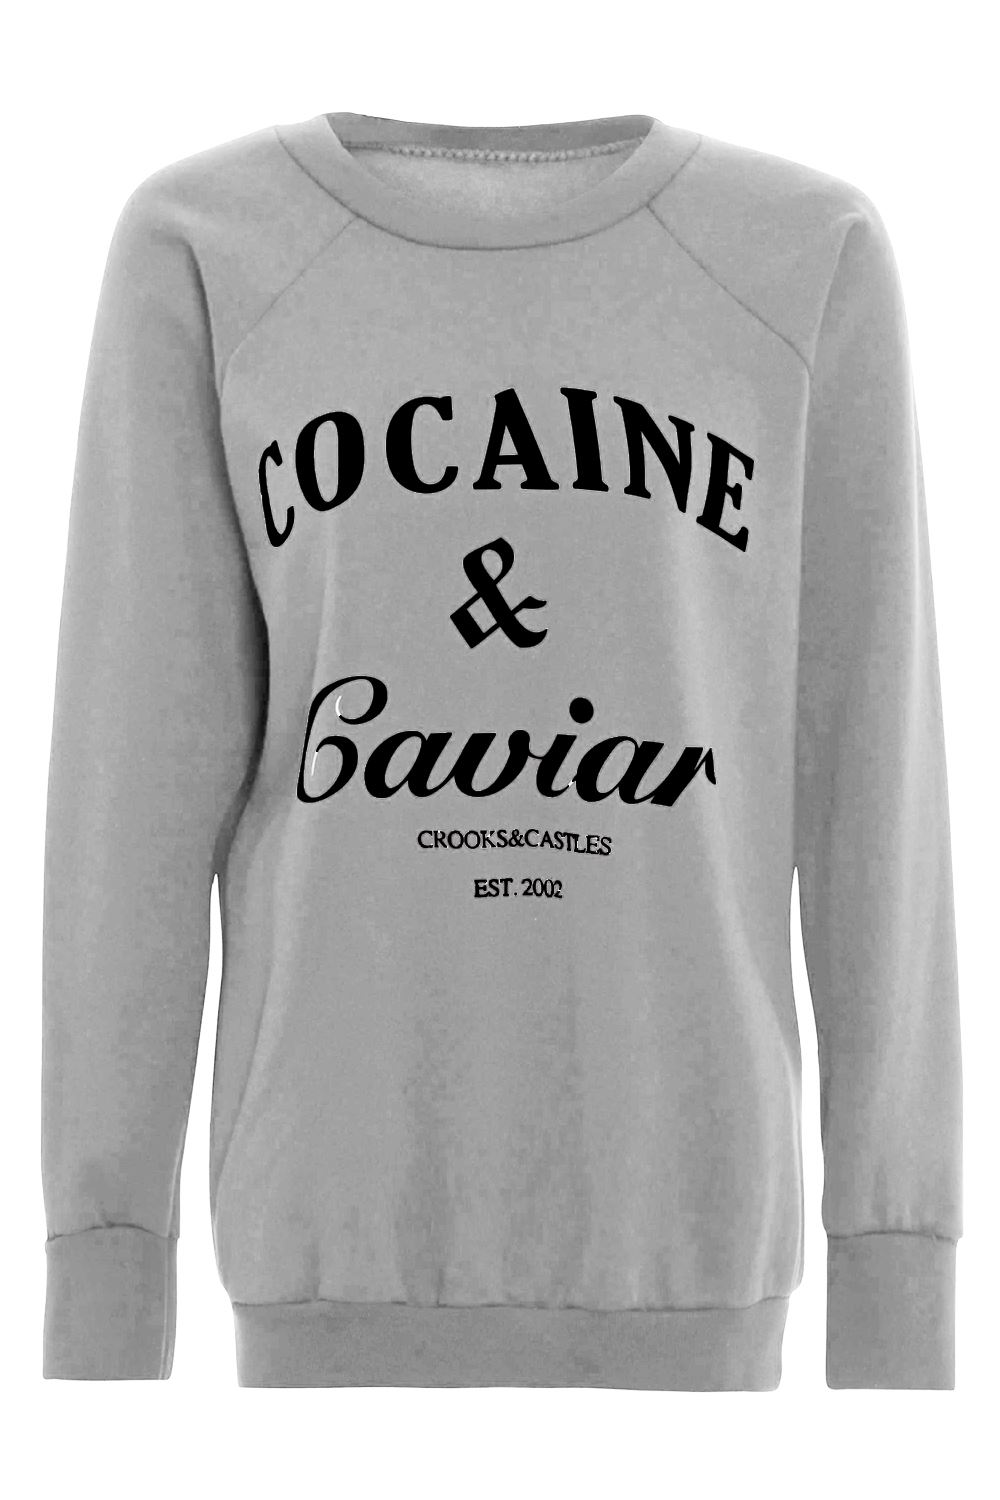 Ladies-Womens-Printed-Cocaine-And-Caviar-Sweatshirt-Pullover-Jumper-T-Shirt-Top